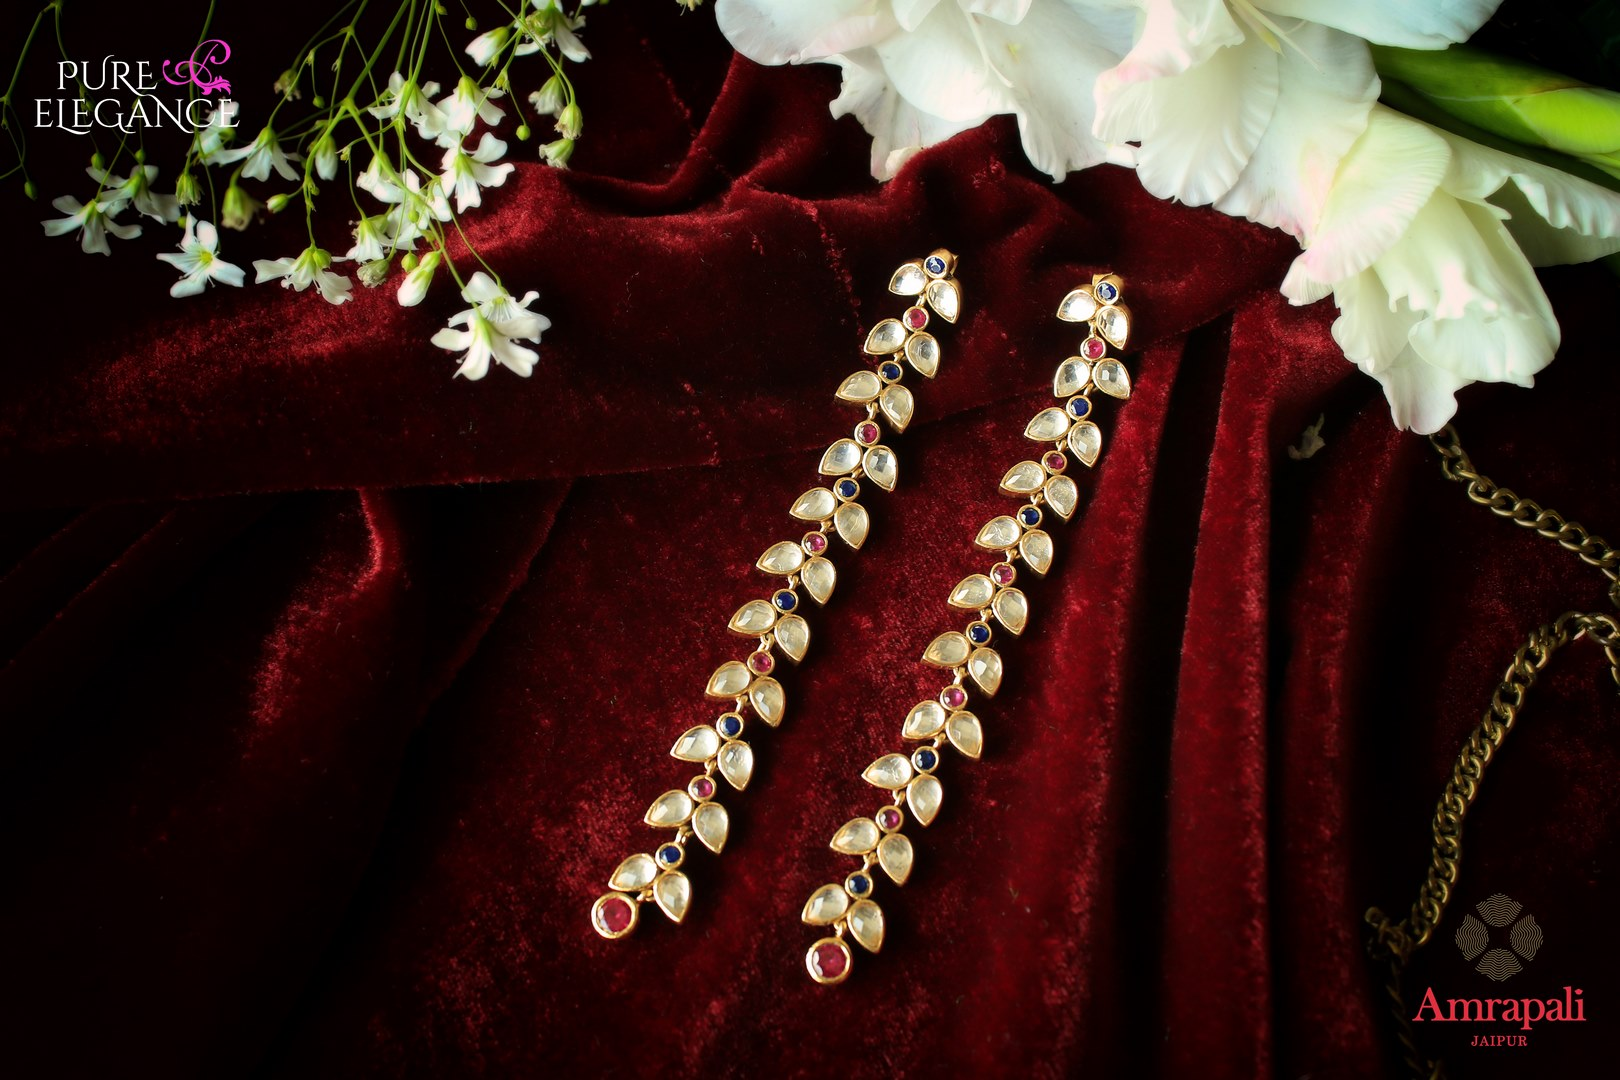 Buy Amrapali silver gold plated leaf string glass earrings online in USA. If you are looking for Indian jewelry in USA, then Pure Elegance Indian fashion store is the place for you. A whole range of exquisite silver gold plated earrings, necklaces is waiting for you on our shelves, you can also opt to shop online.-flat lay